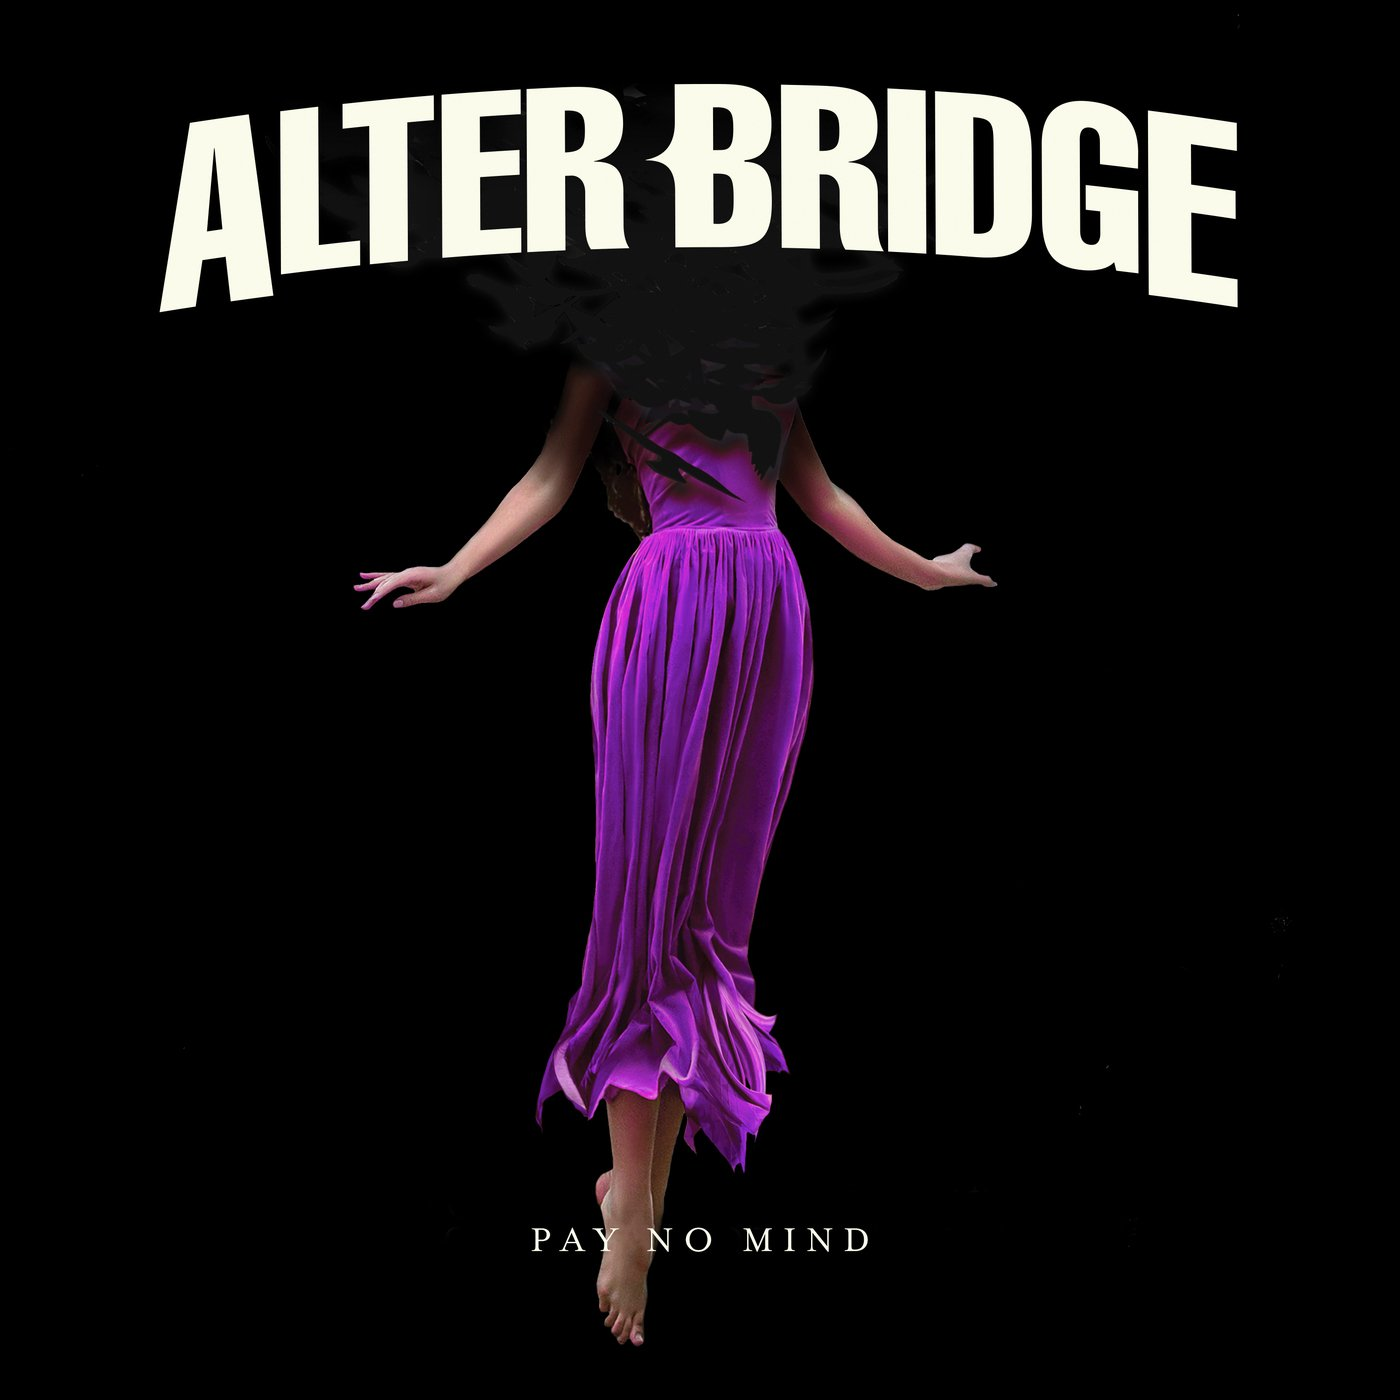 Alter Bridge - Pay No Mind (Single) (2019)